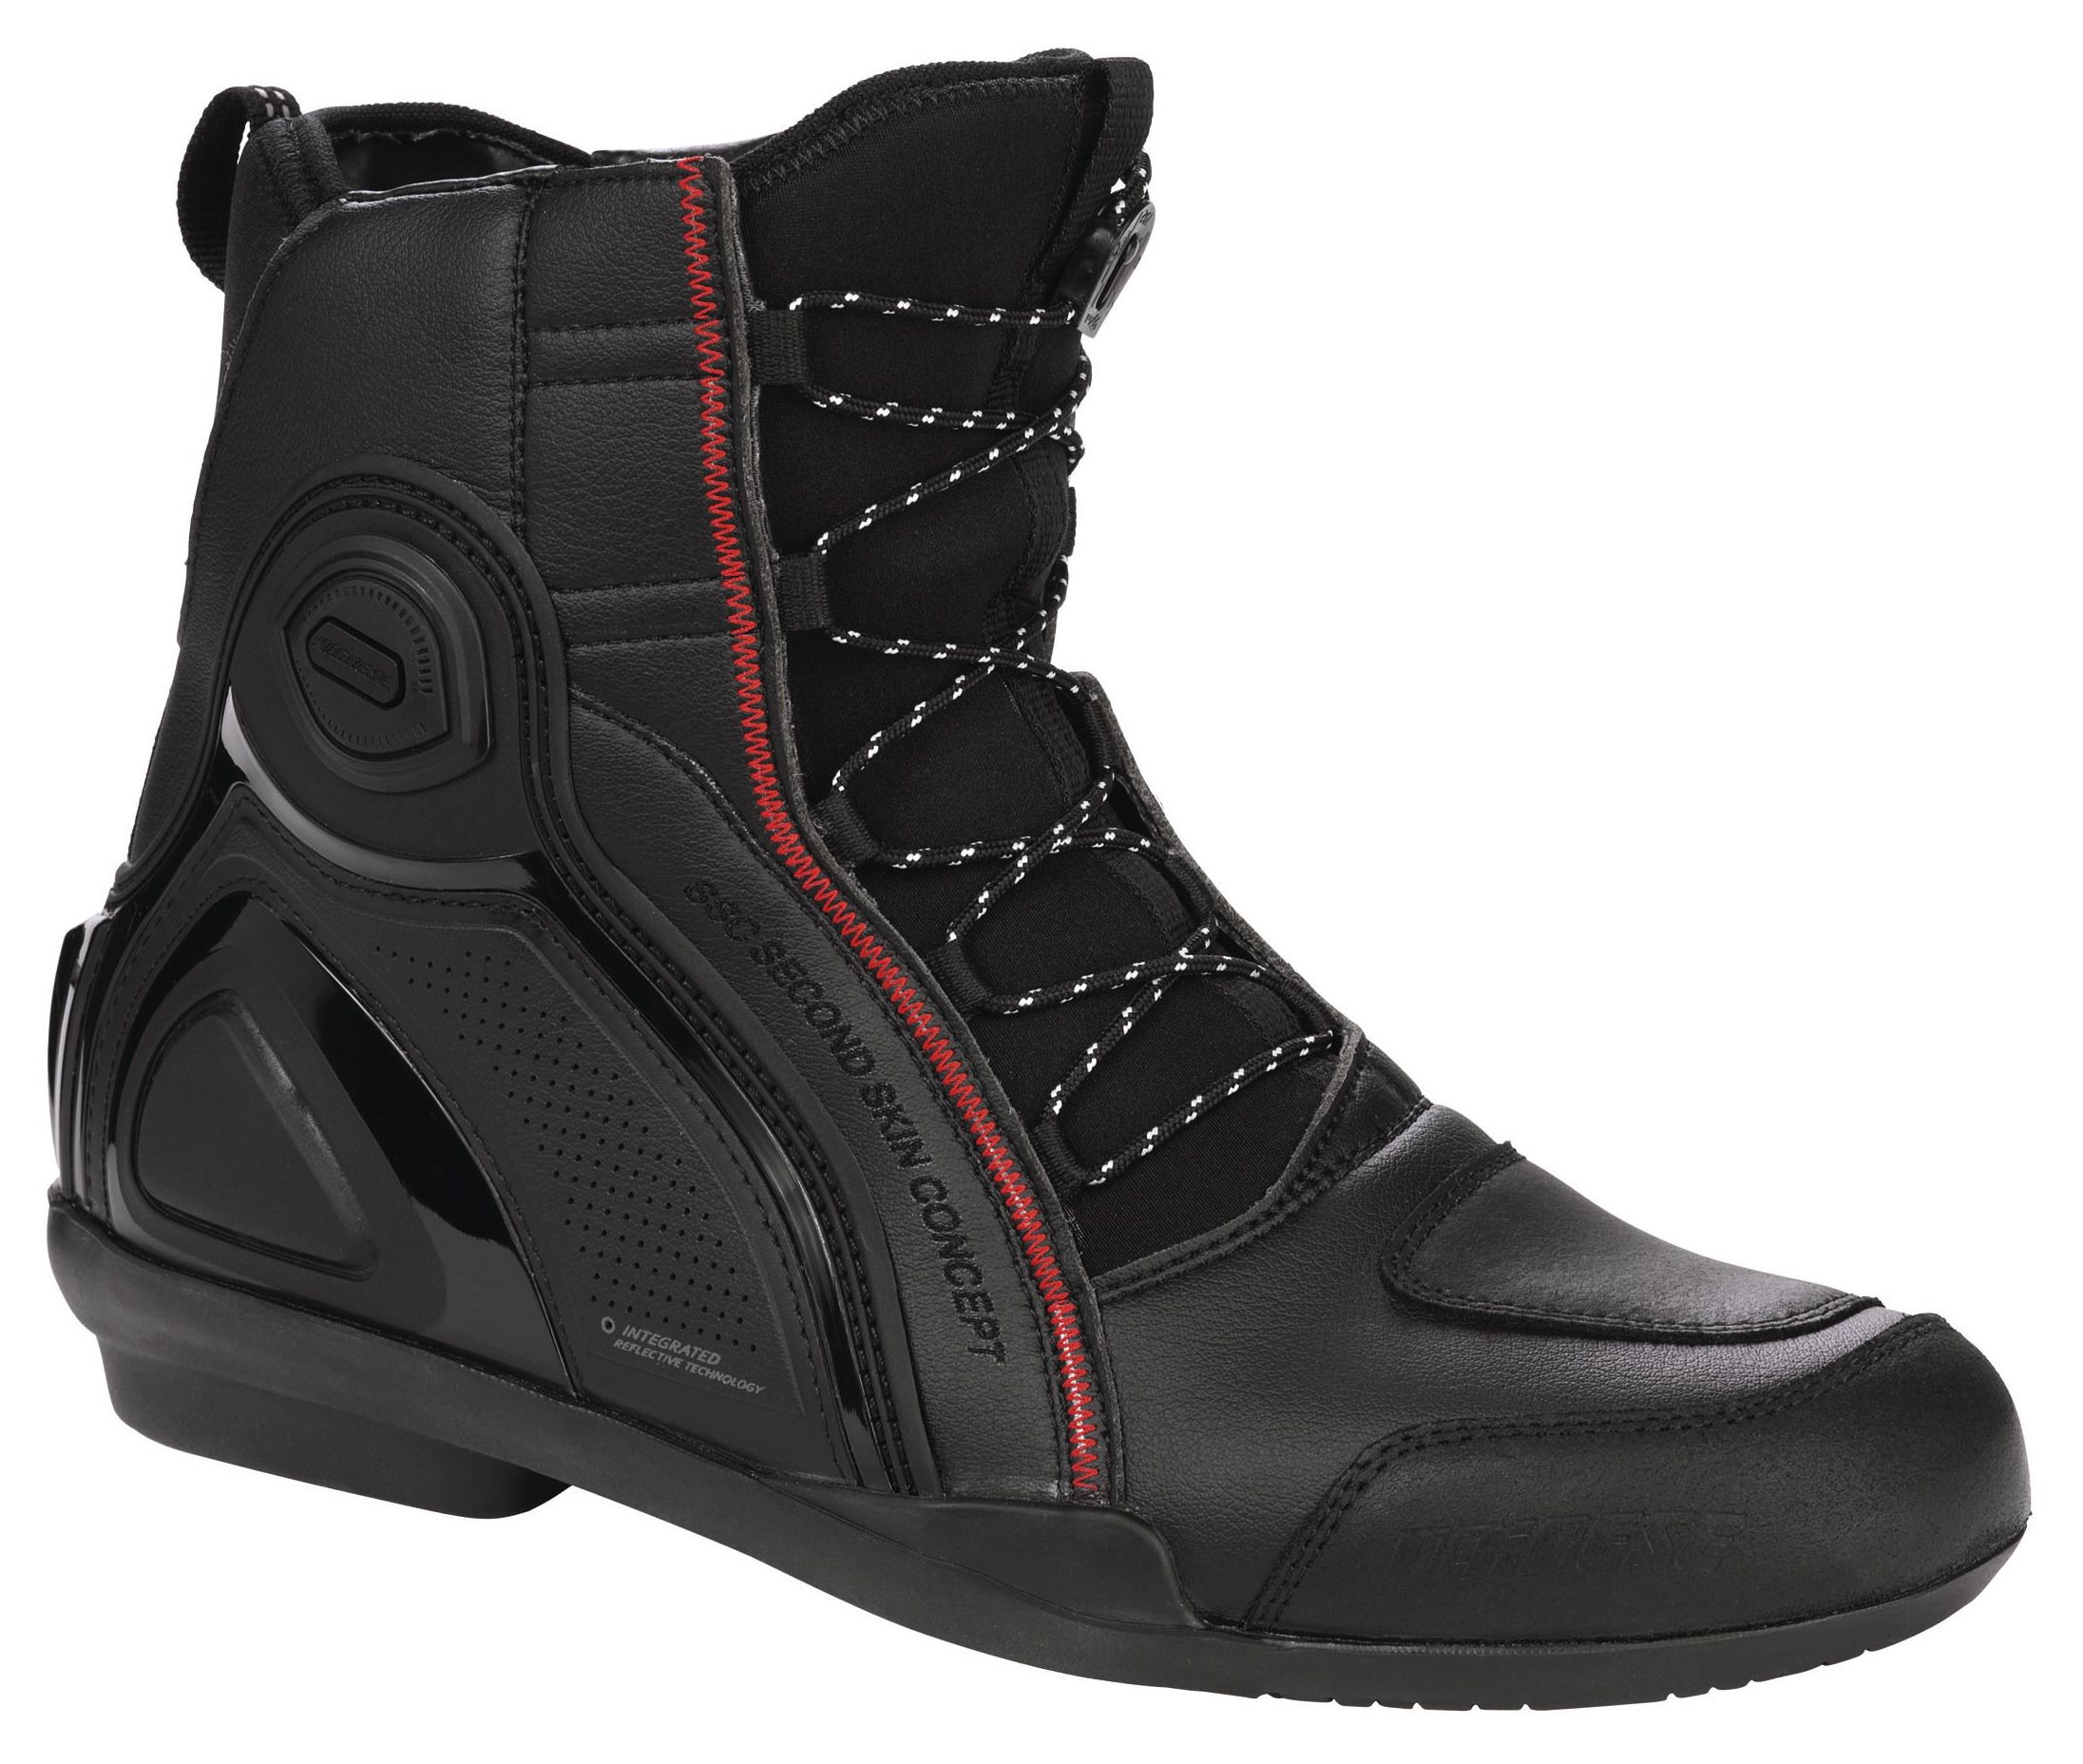 Furniture Stores Kitchener Dainese Shoes 28 Images Dainese Dyno D1 Shoes Revzilla